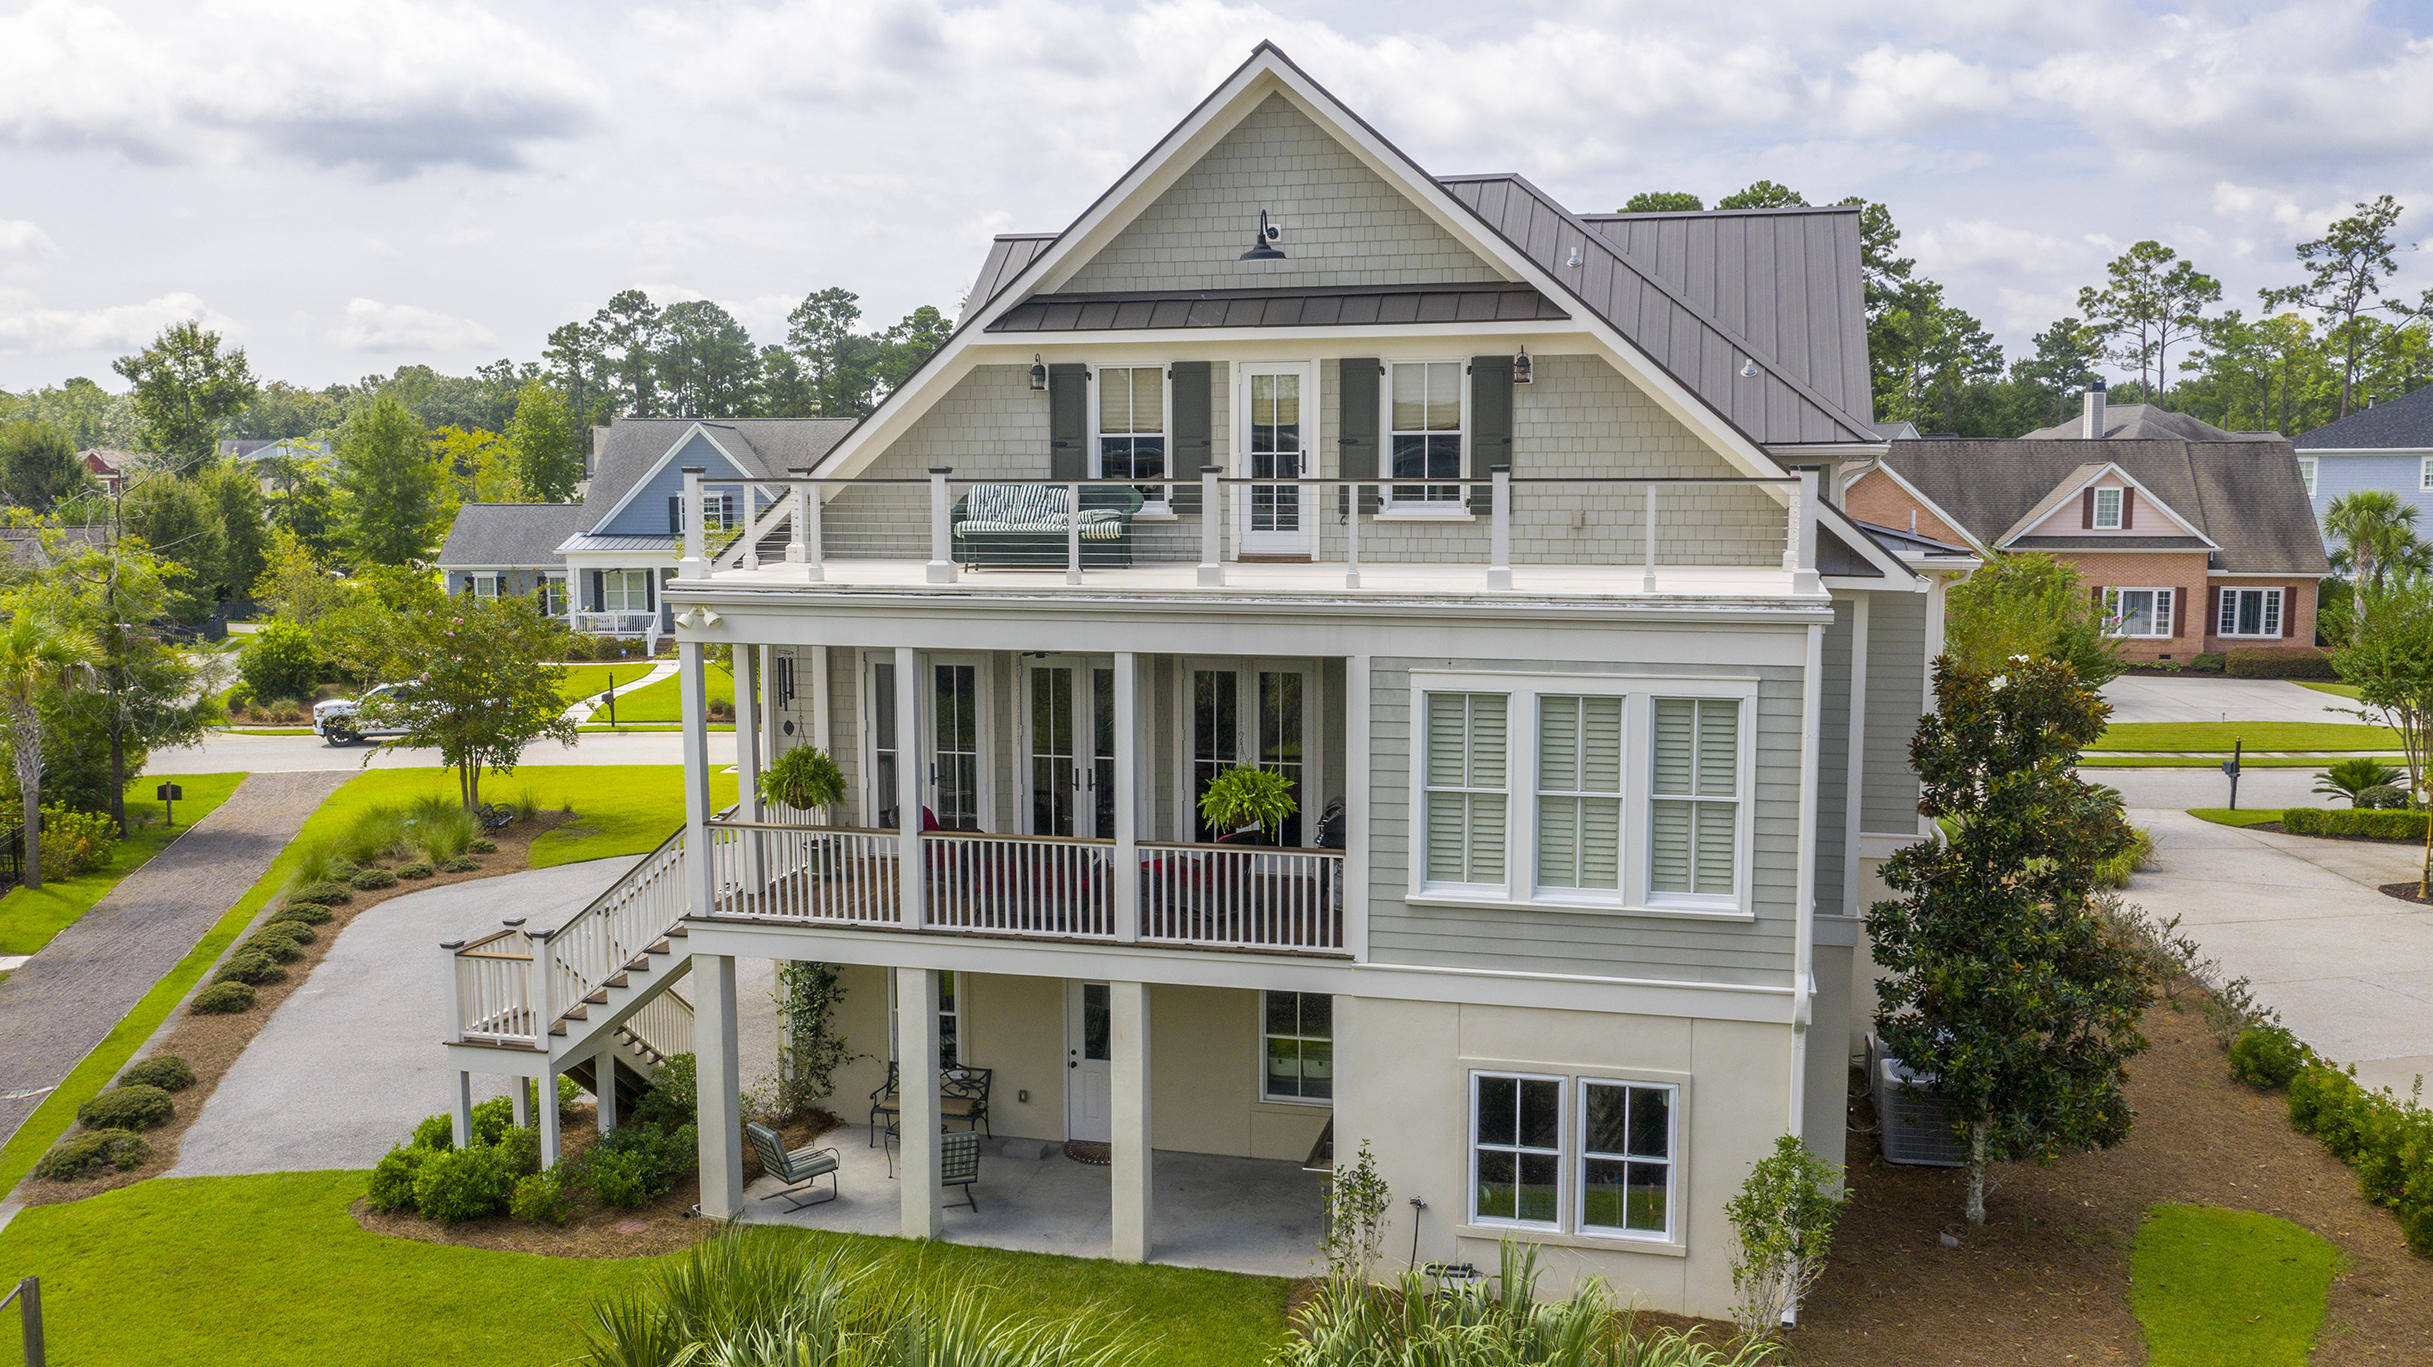 Dunes West Homes For Sale - 2836 Stay Sail, Mount Pleasant, SC - 17